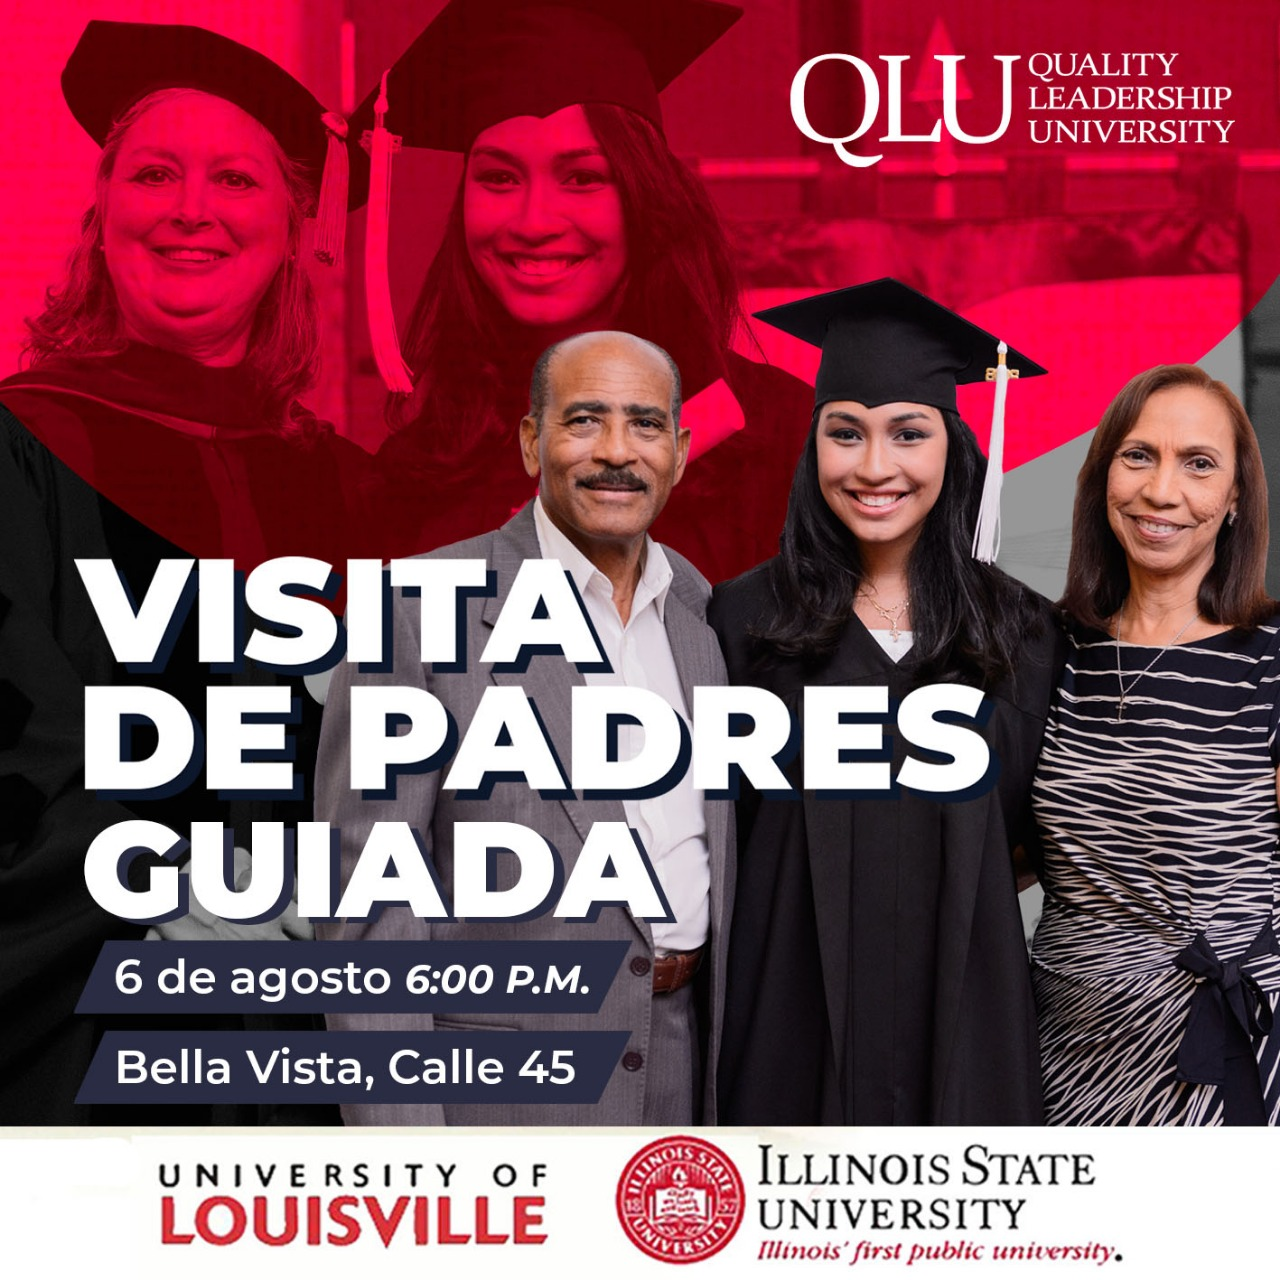 Visita guiada para padres University of Louisville